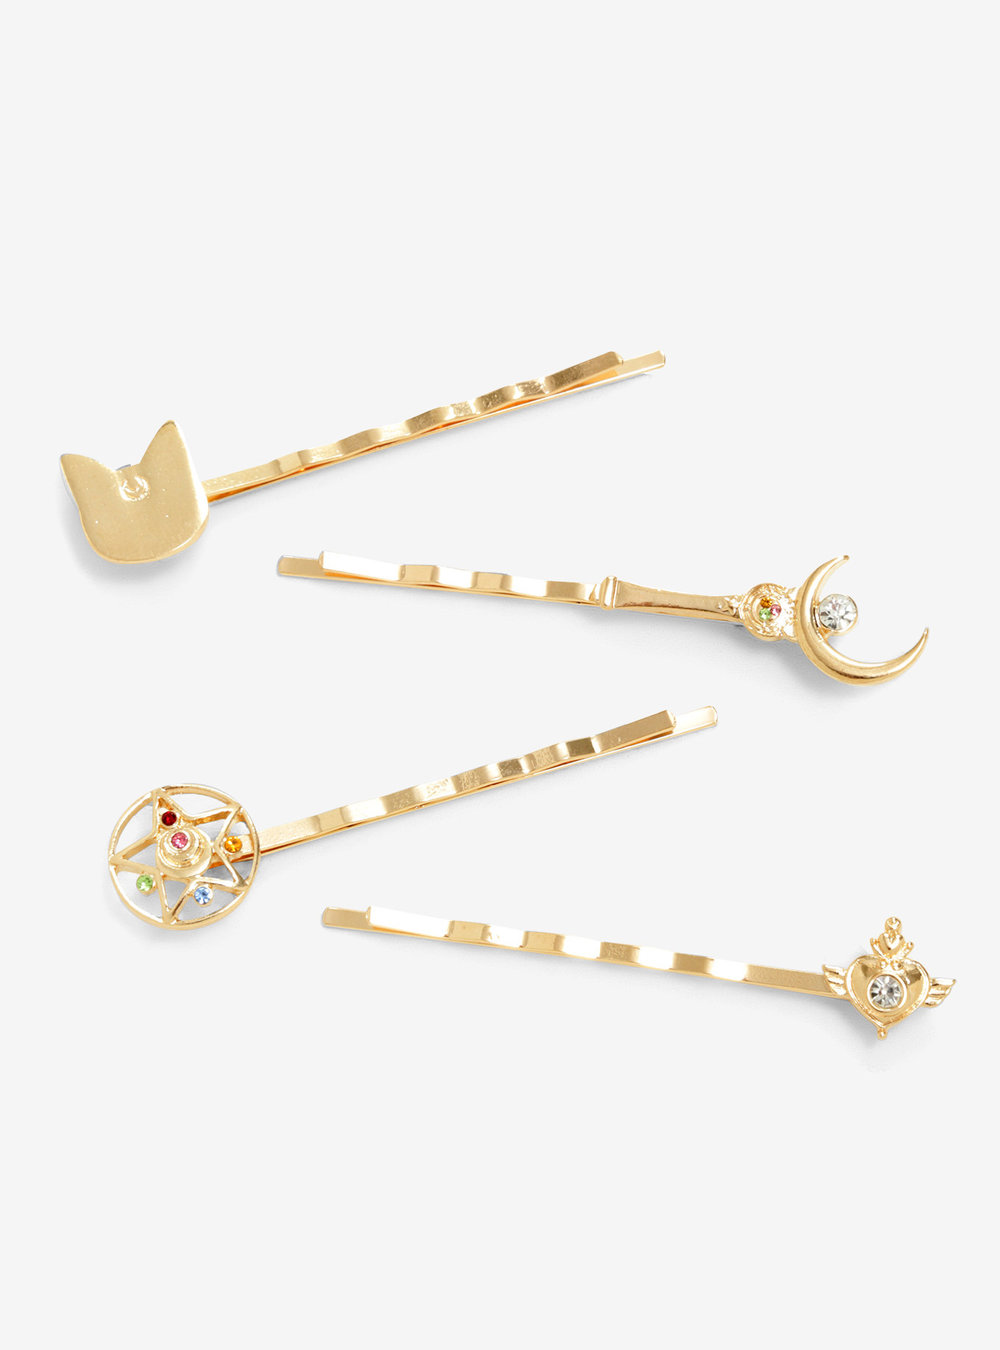 Sailor Moon Bobby Pin Set